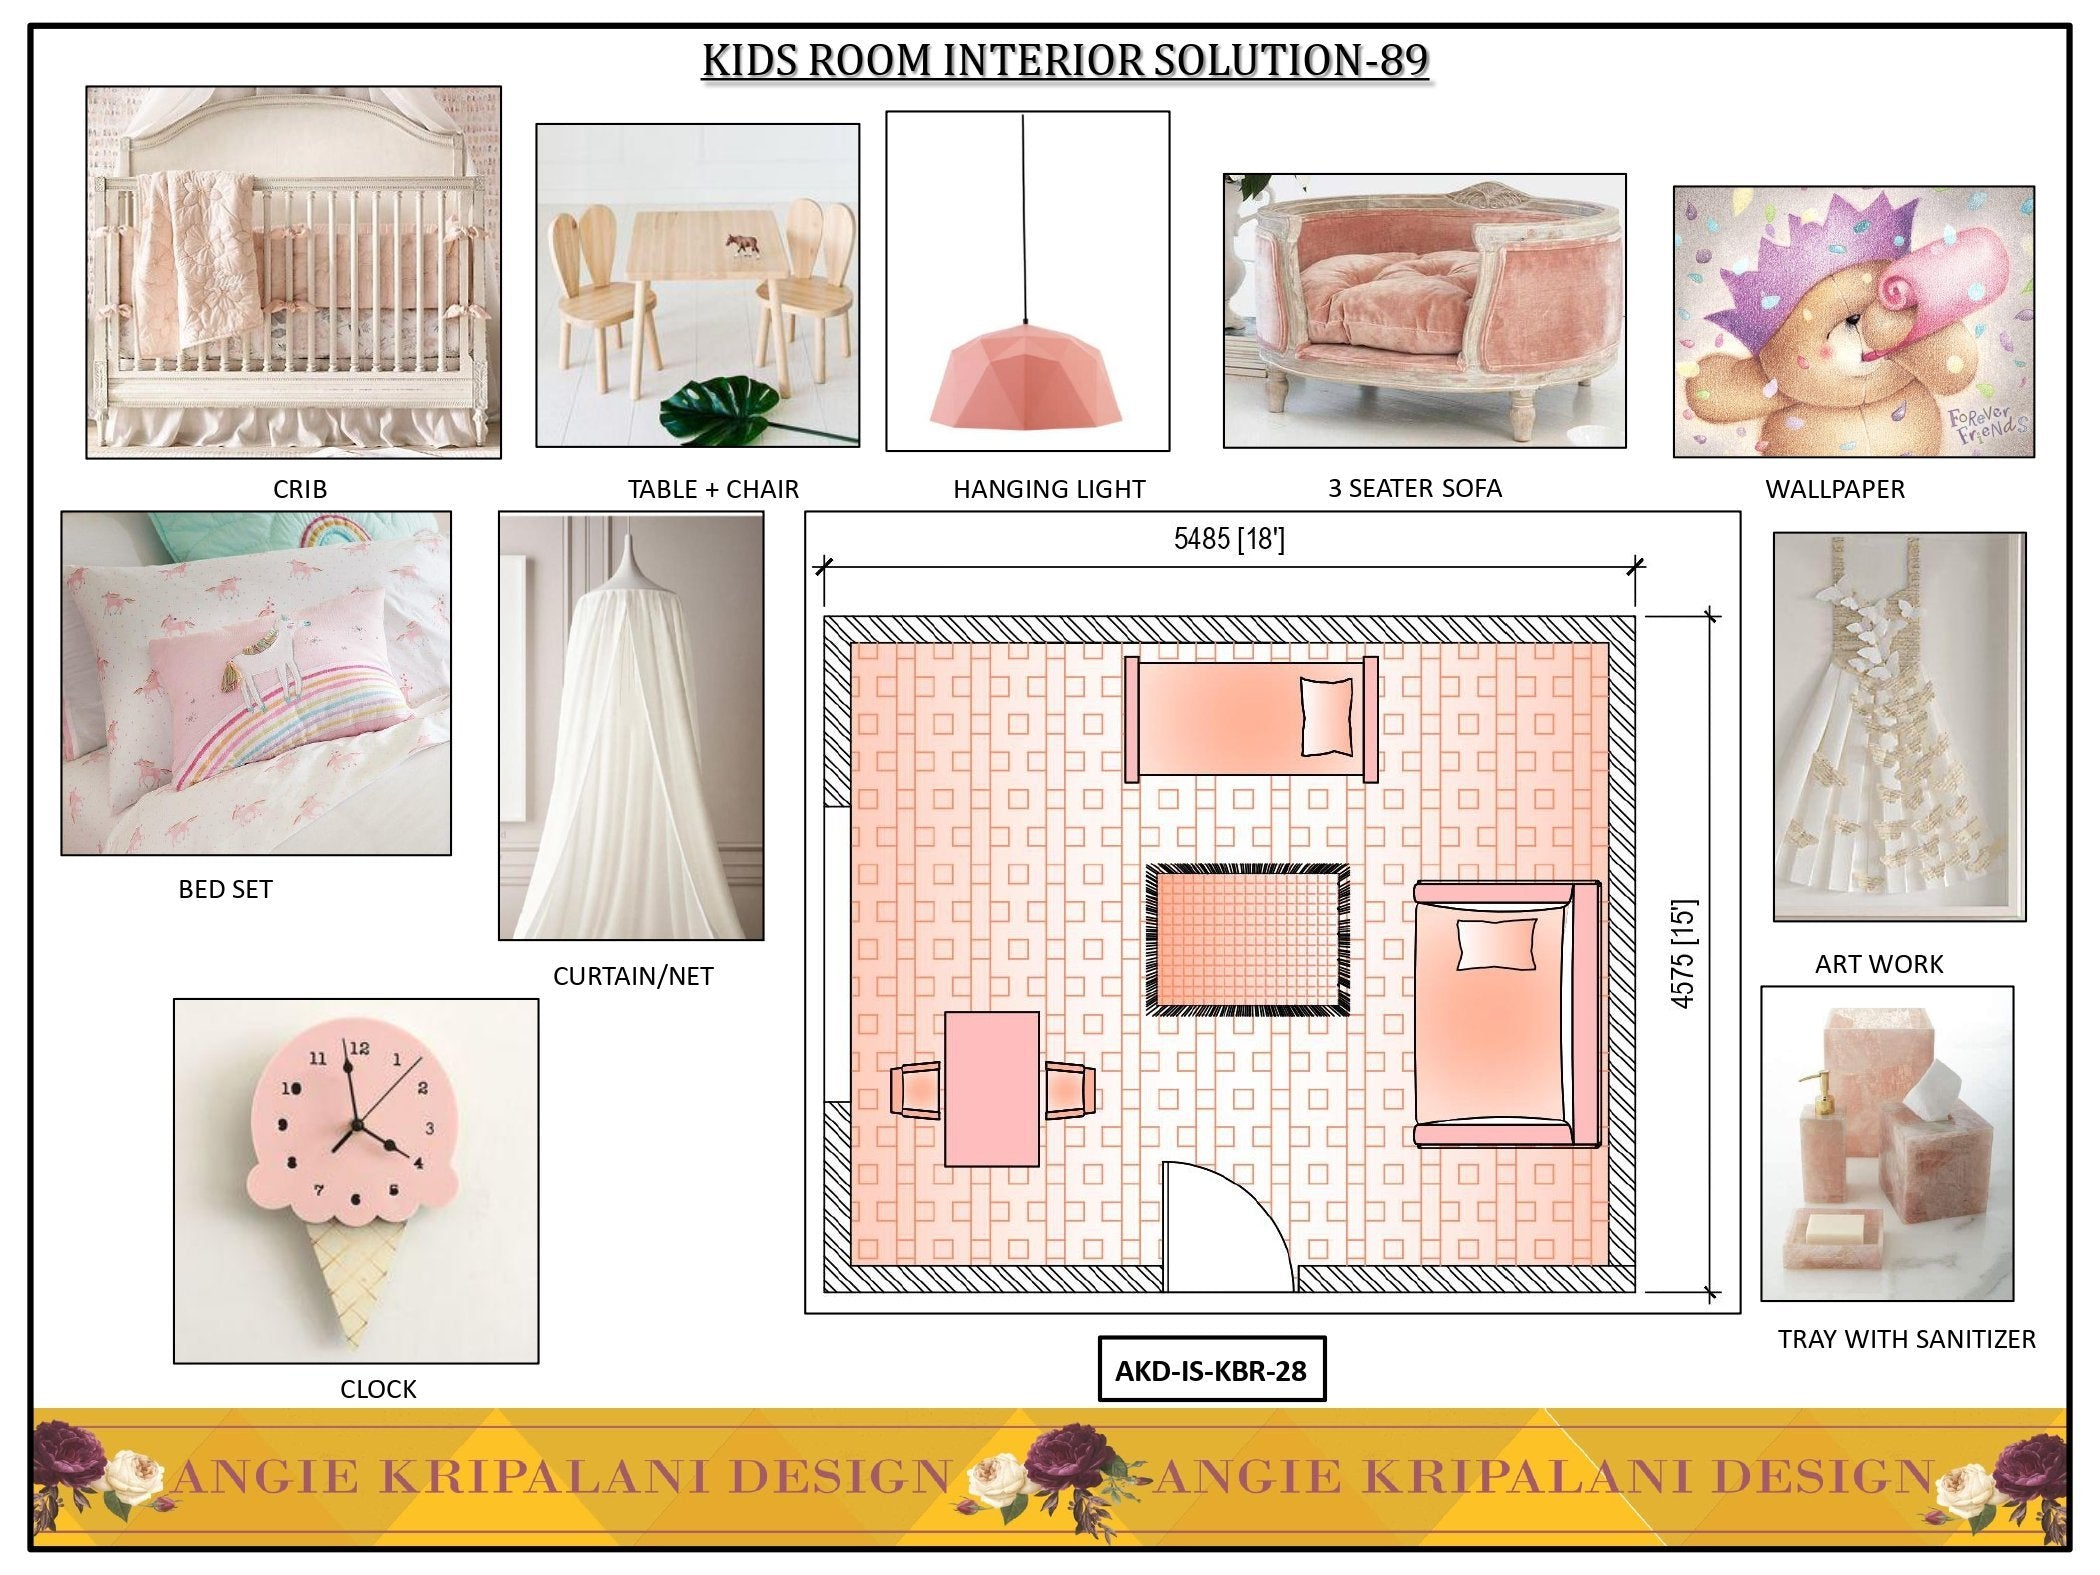 KIDS BED ROOM INTERIOR SOLUTION-89 ANGIE HOMES